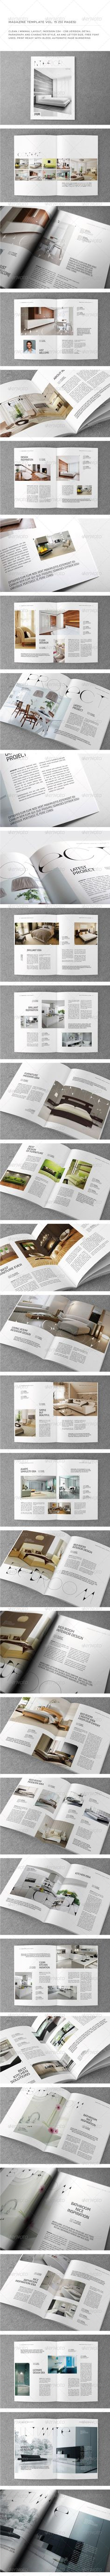 Indesign template vol 15 You can download this template here : http://graphicriver.net/item/a4letter-50-pages-mgz-vol-15/5278921?WT.oss_phrase=&WT.oss_rank=40&WT.z_author=Shafura&WT.ac=search_thumb